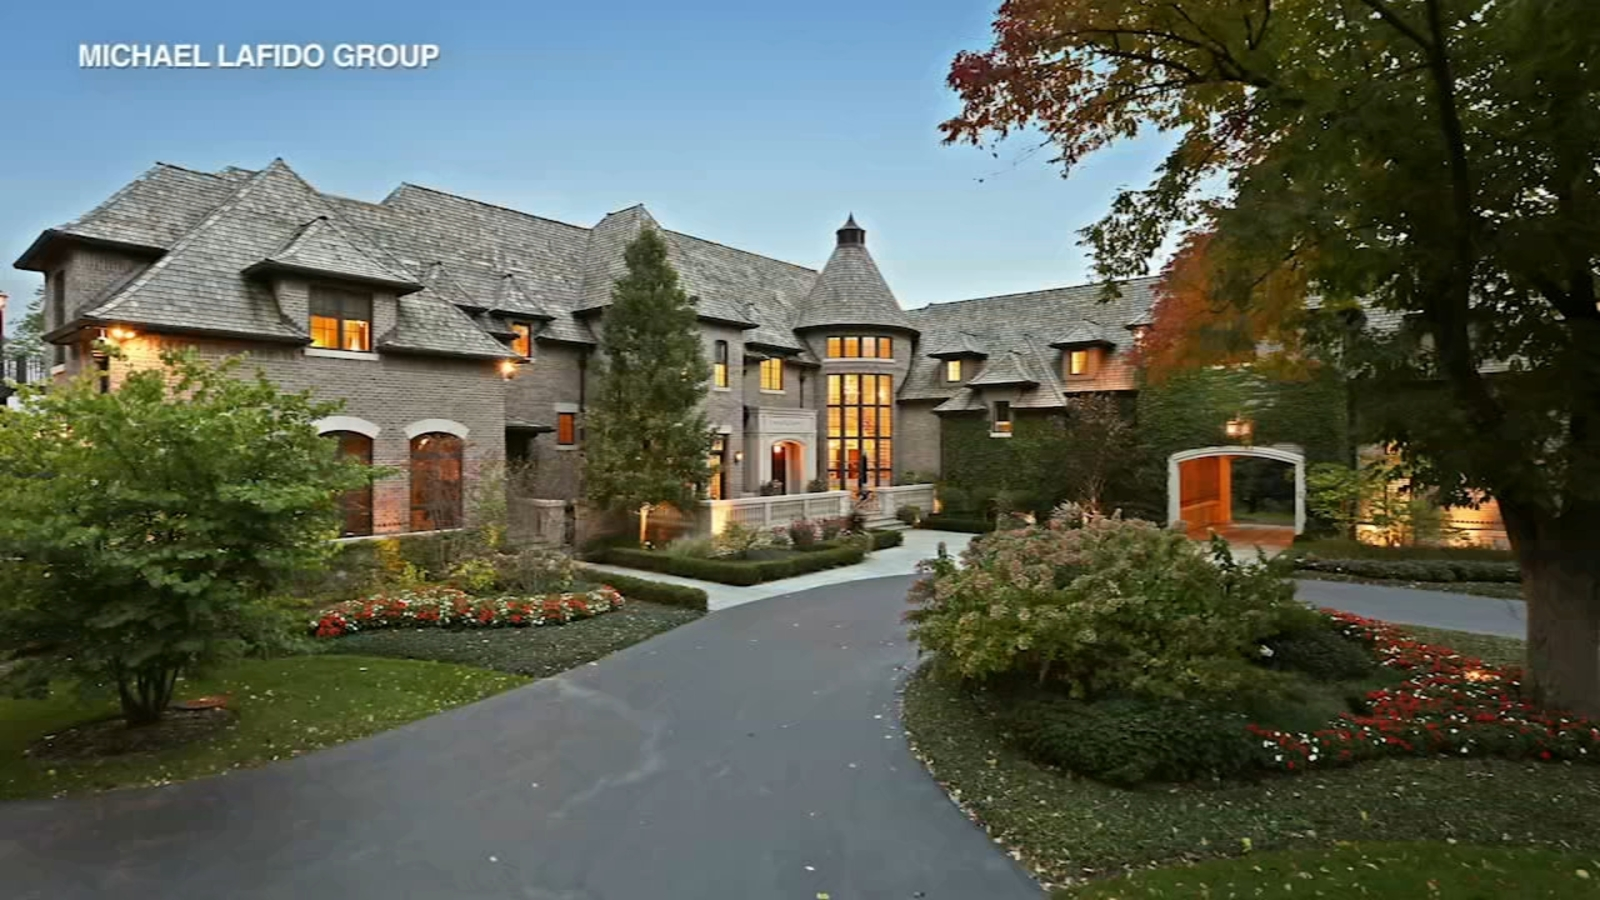 Live like a star: Barrington Hills home featured in 'Empire' series listed at $9.5M